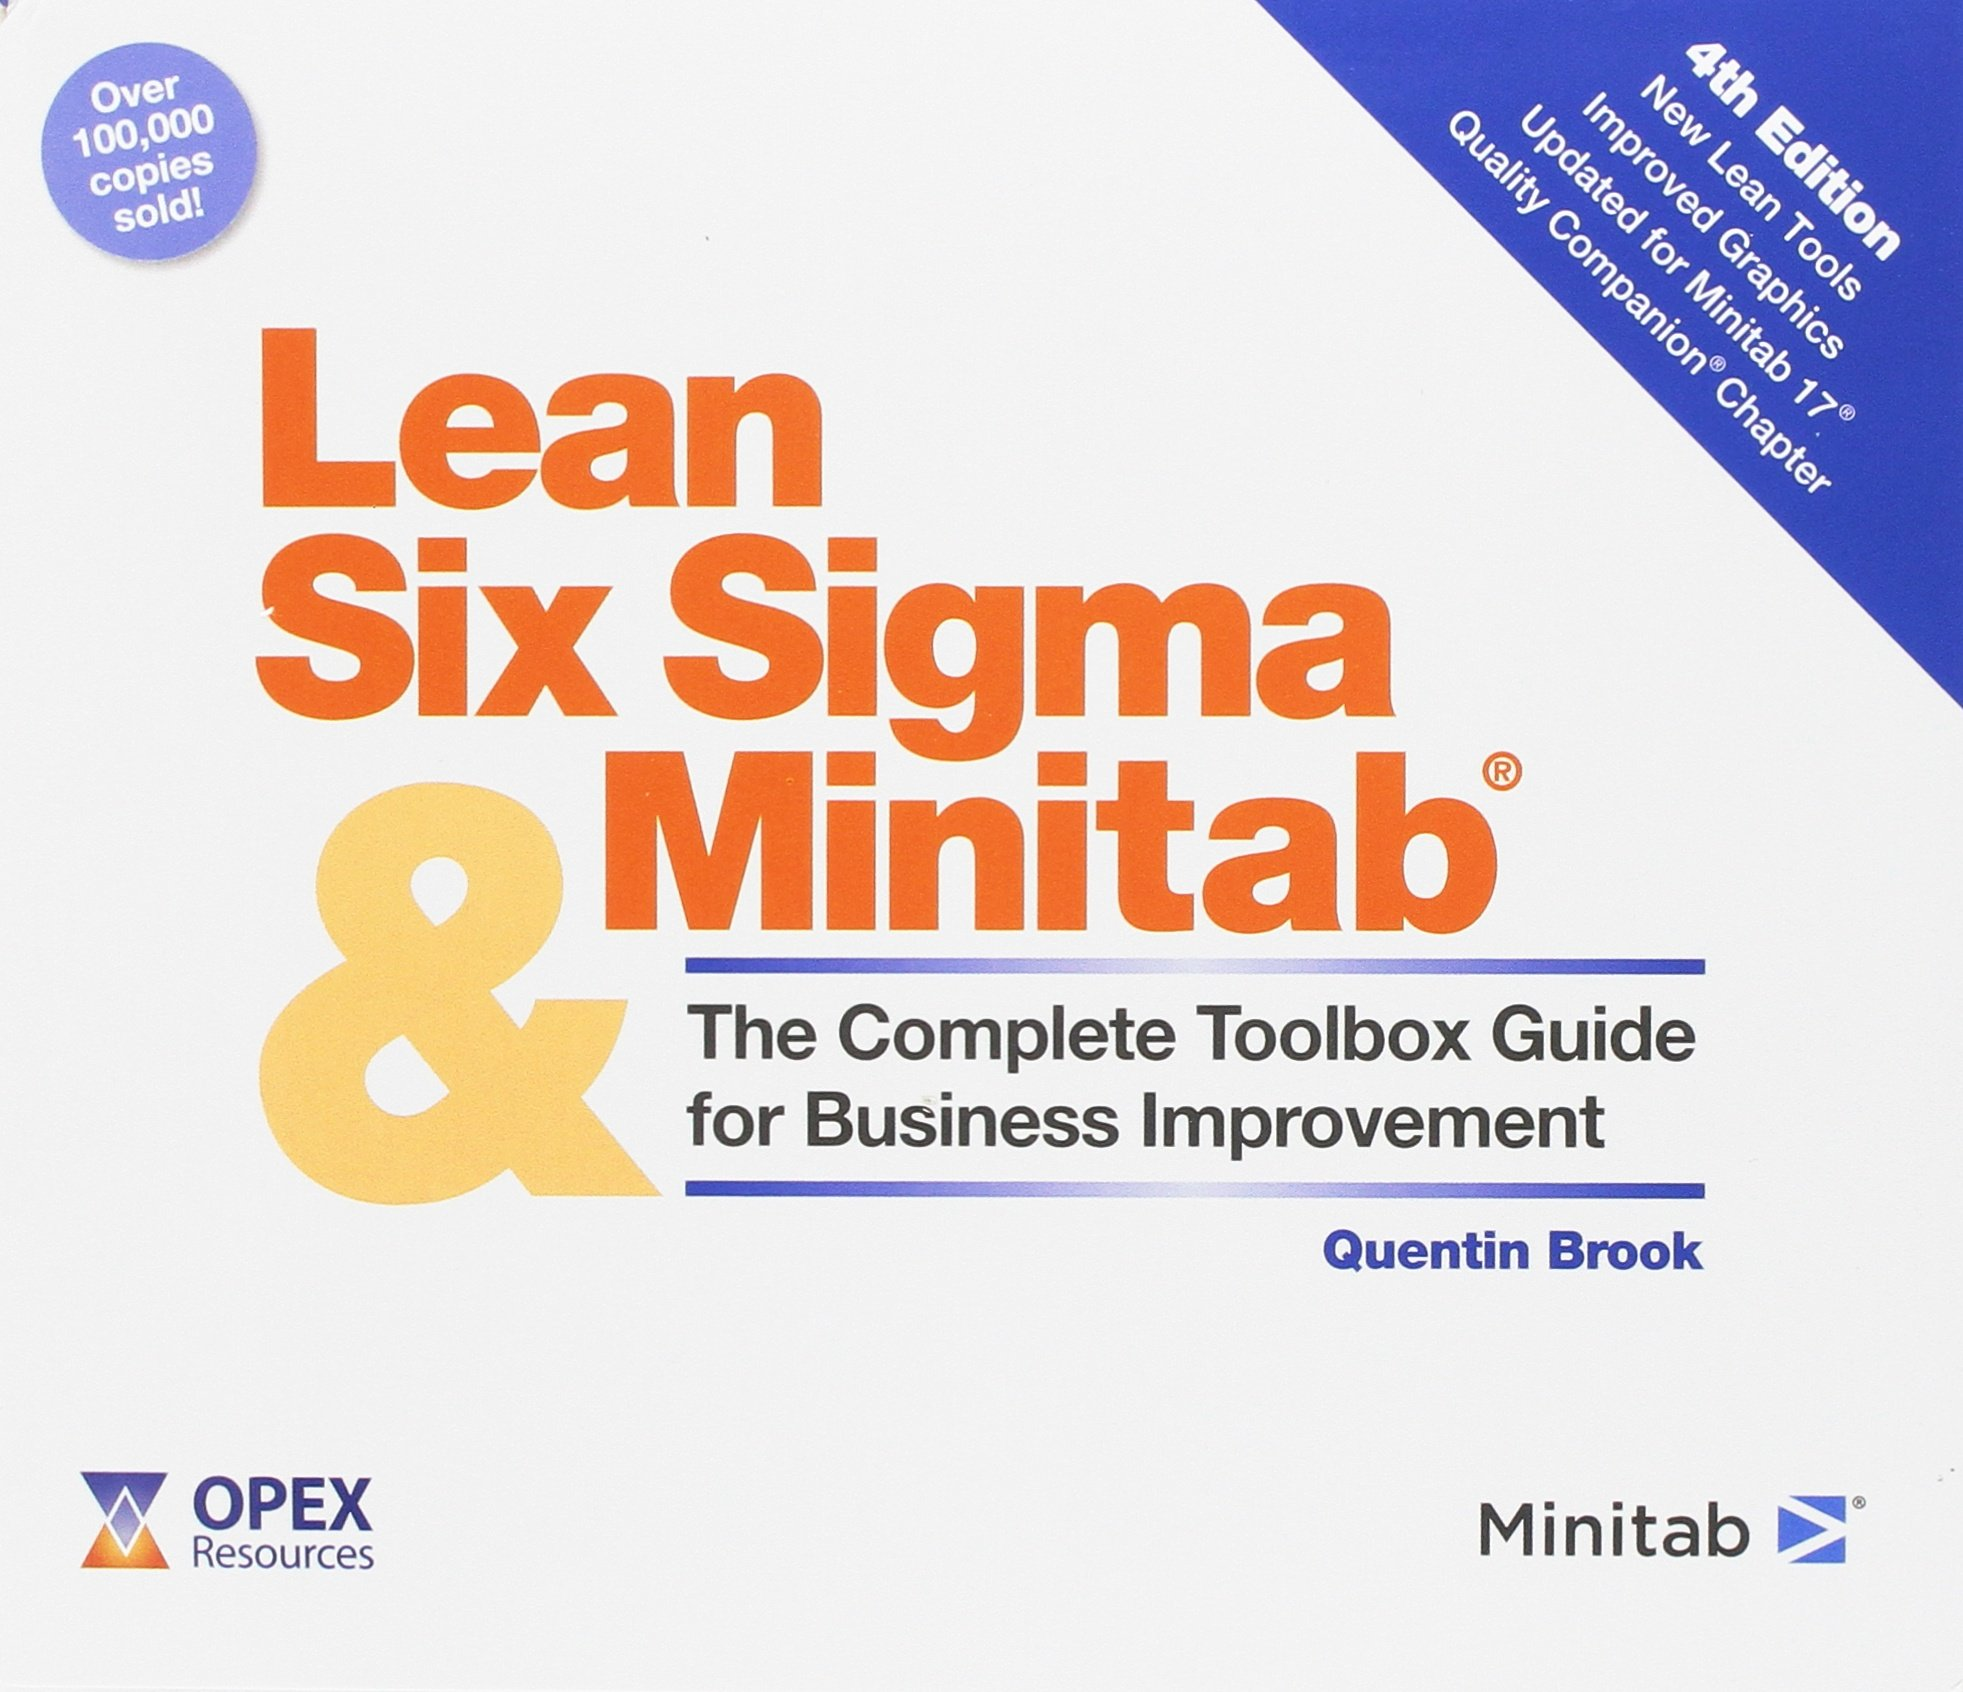 Lean six sigma and minitab 4th edition the complete toolbox lean six sigma and minitab 4th edition the complete toolbox guide for business improvement amazon quentin brook holly brook piper fandeluxe Images